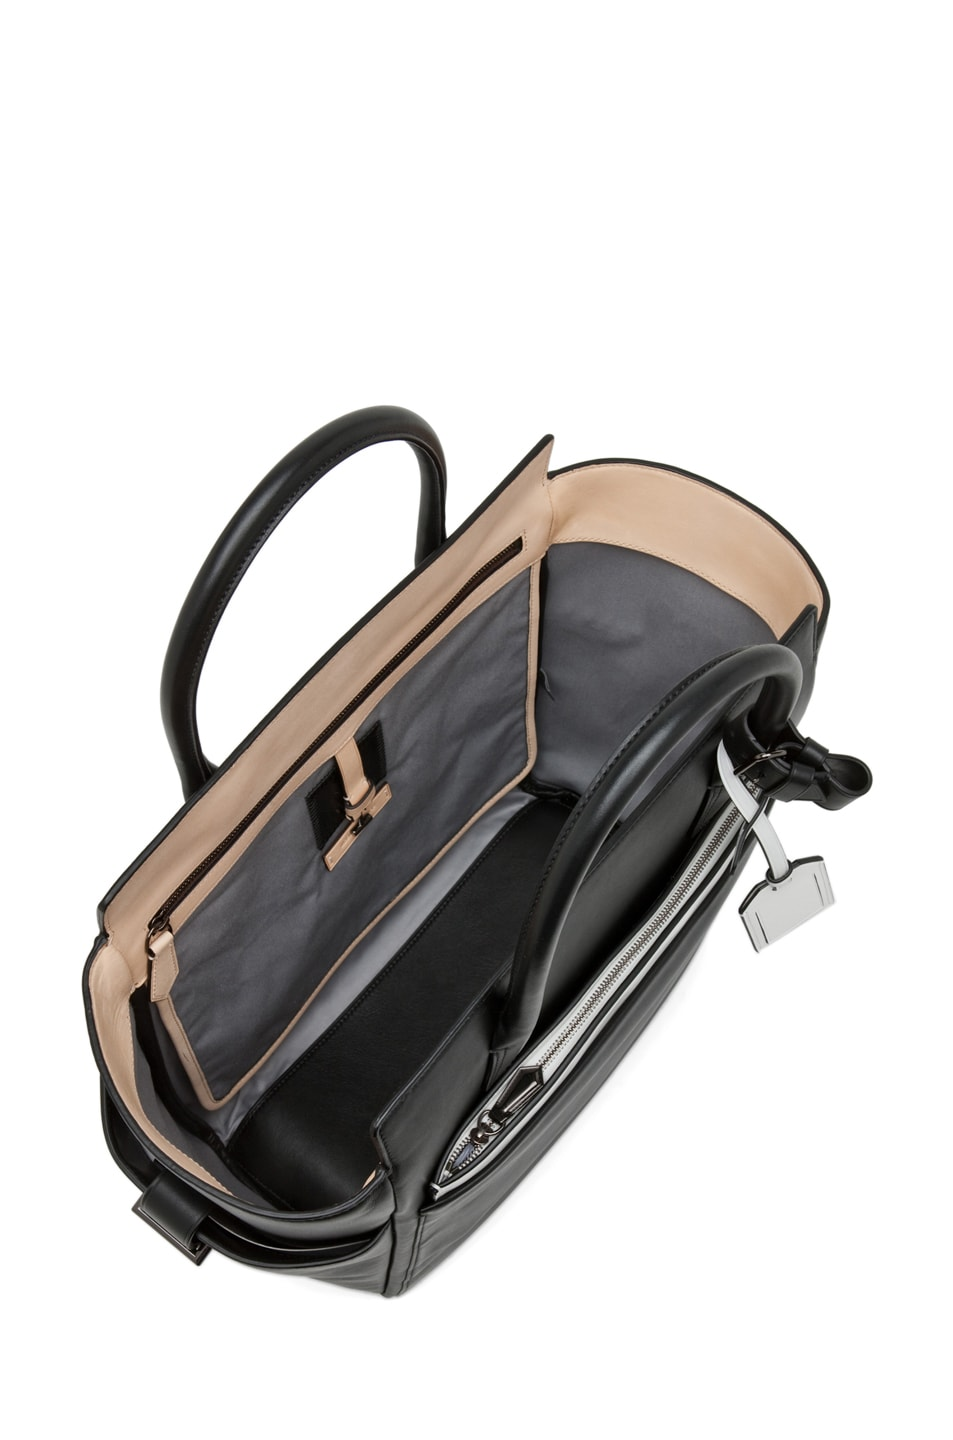 Image 5 of Reed Krakoff Atlantique in Black/White Multi